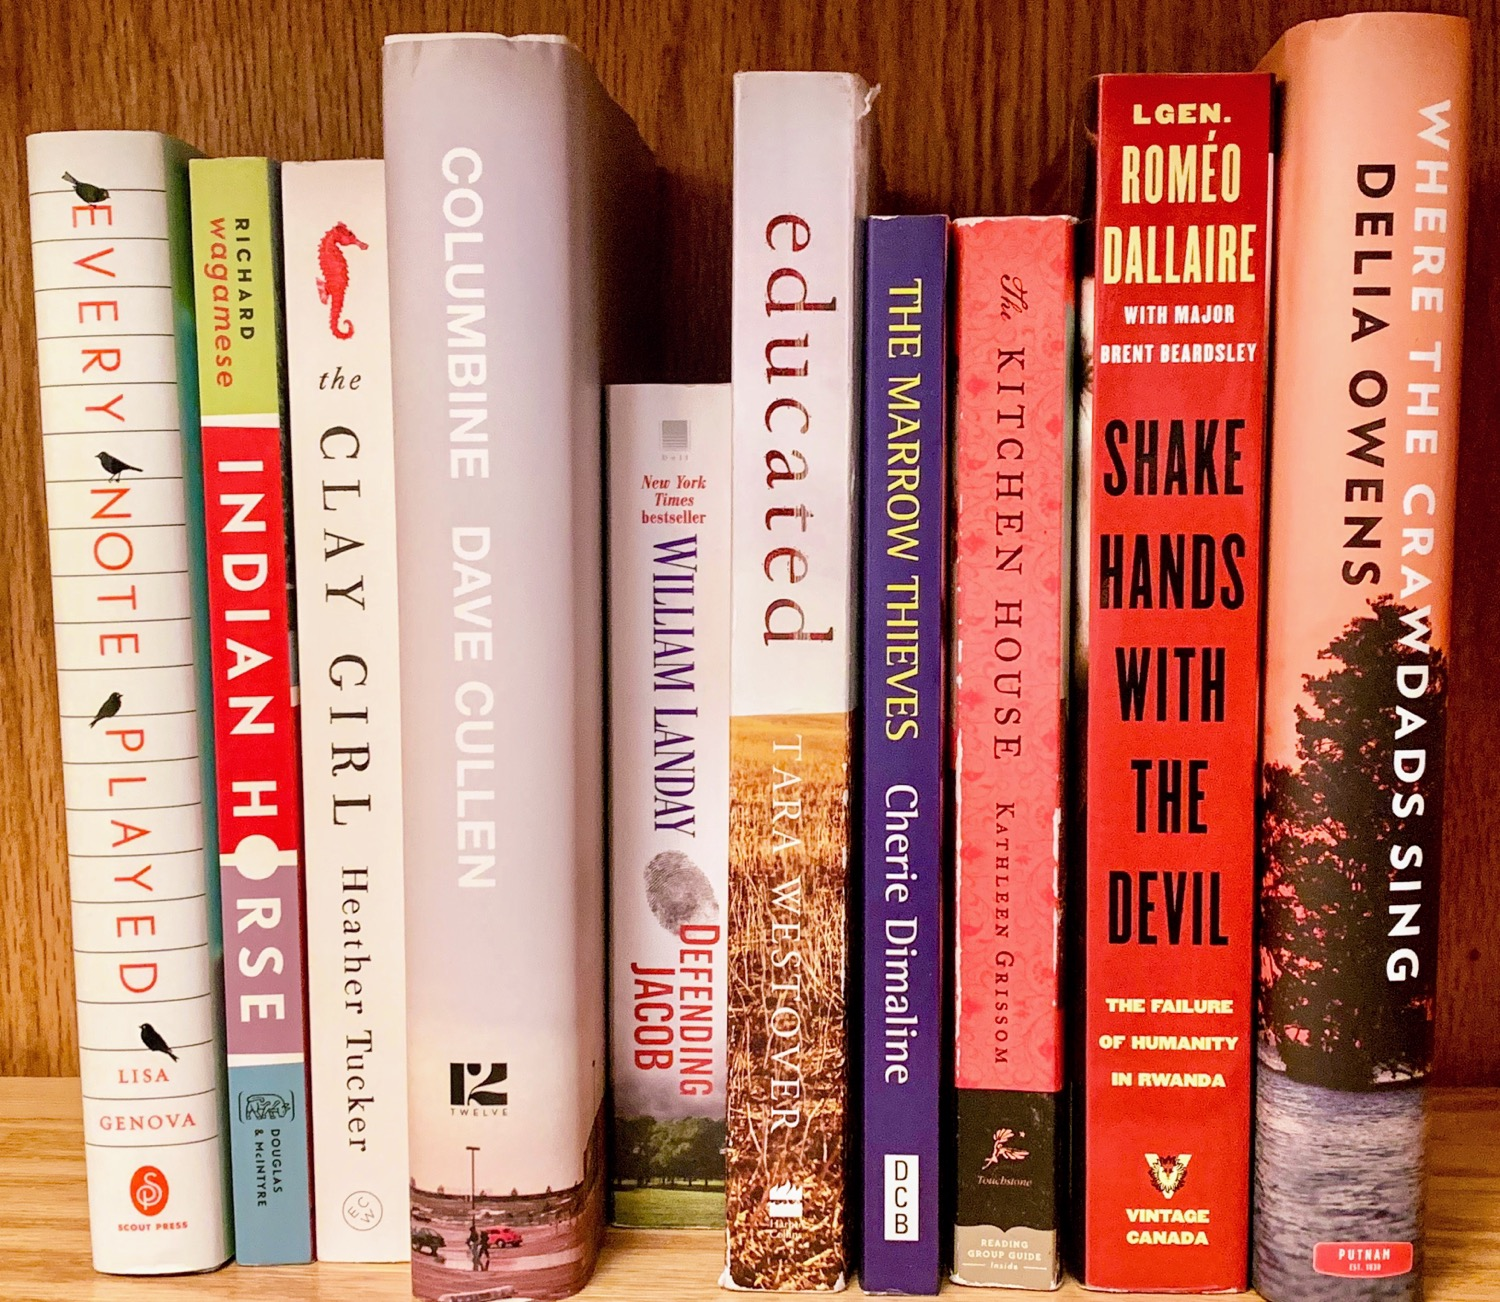 2019's Top 10 Reads and Book List